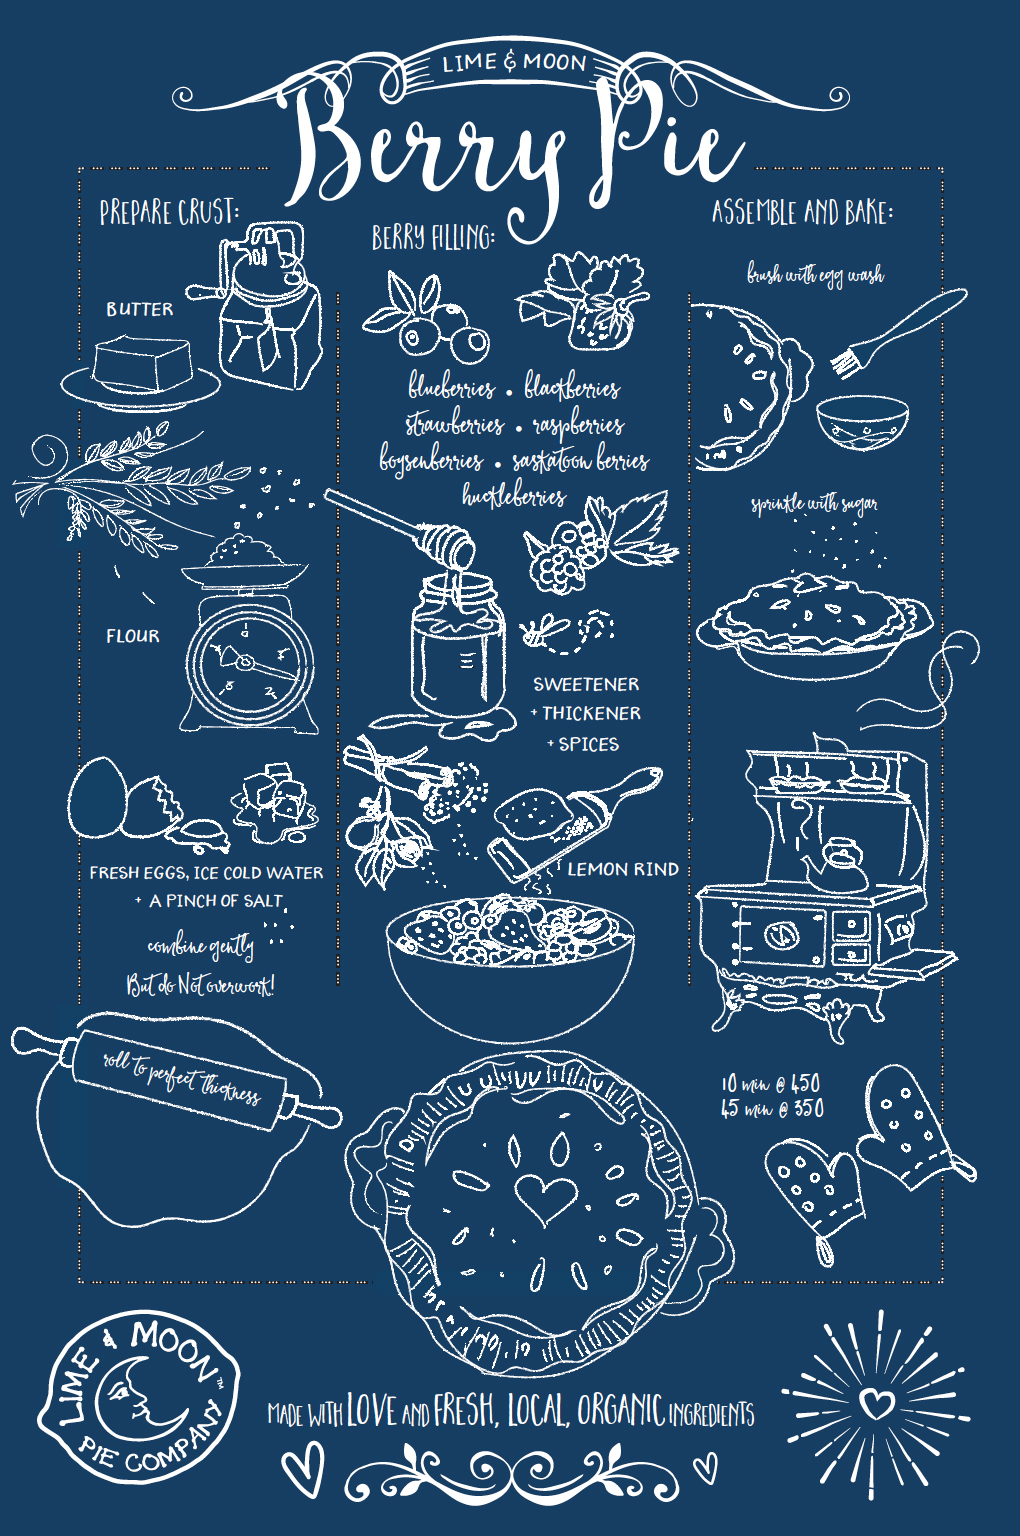 illustrated recipe showing how to bake a berry pie